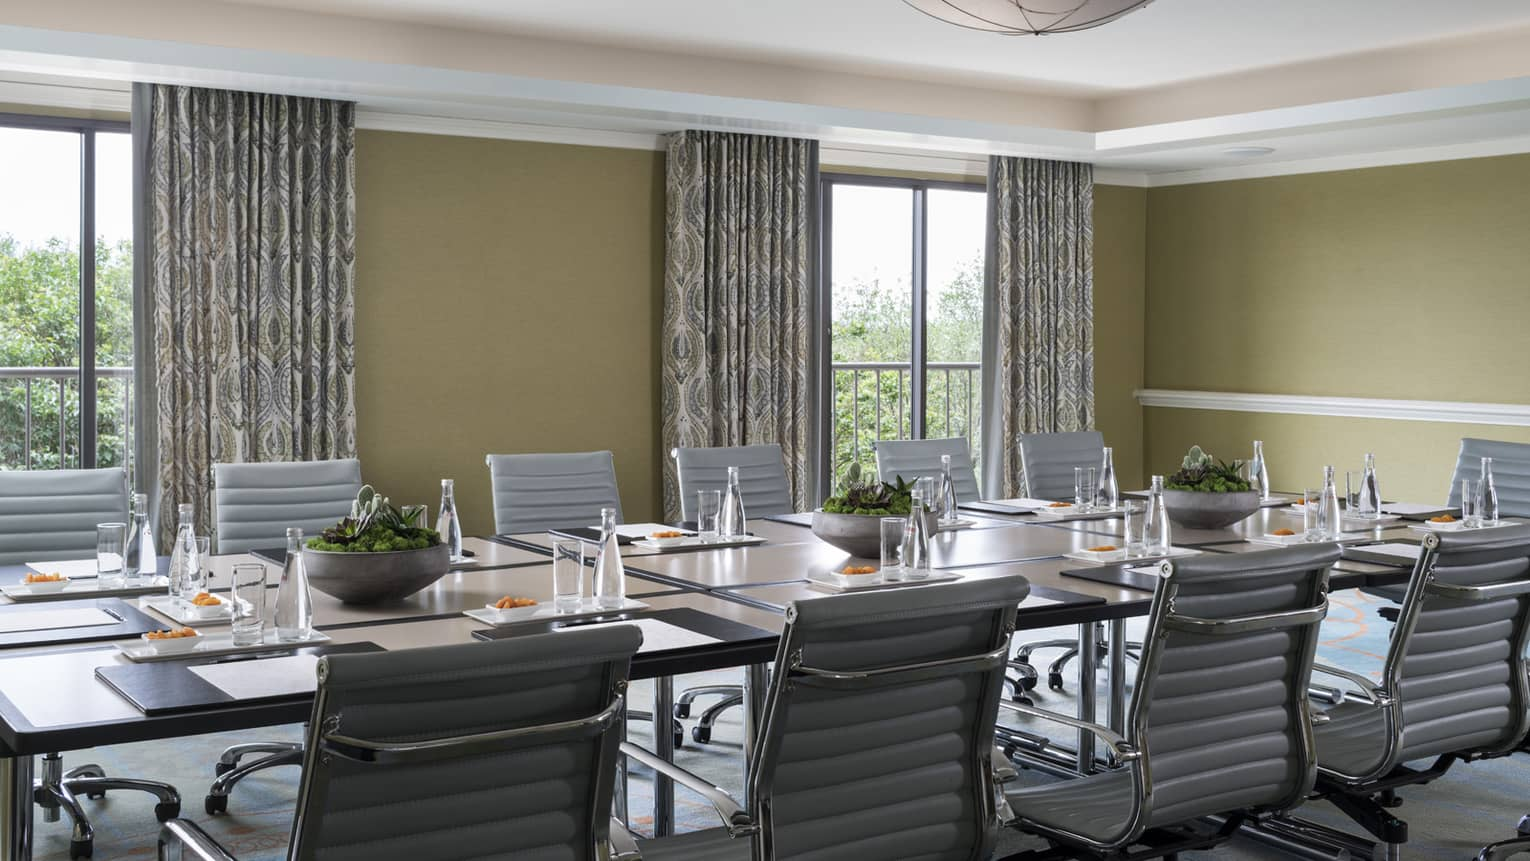 Chairs line long boardroom table in sunny meeting room with large windows, dome light on ceiling